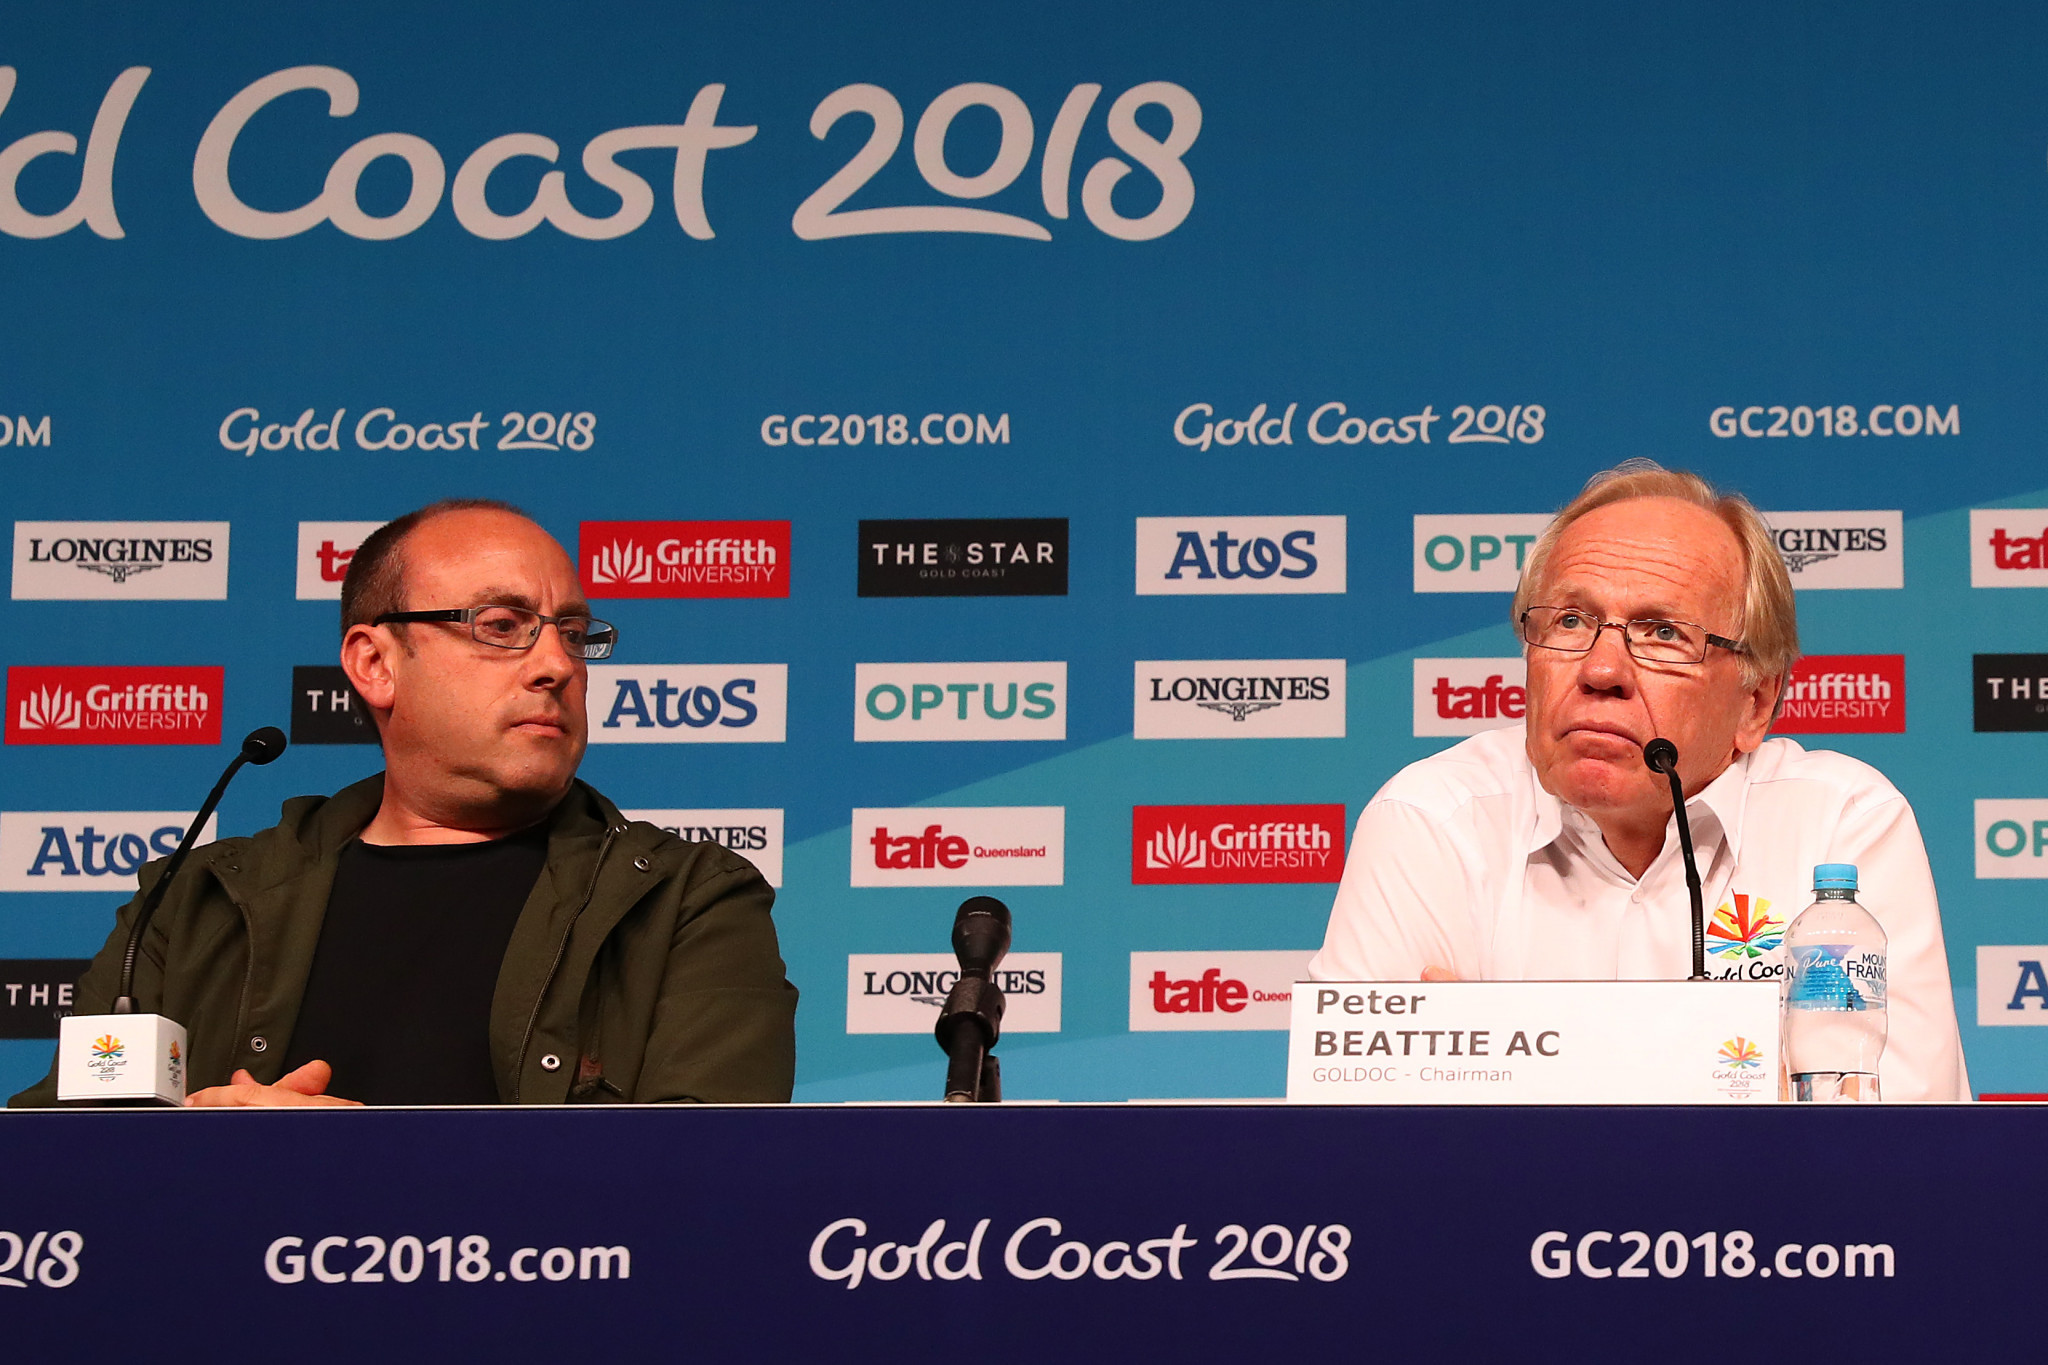 """Beattie admits that Gold Coast 2018 Closing Ceremony will always be """"damaging"""" to his reputation"""